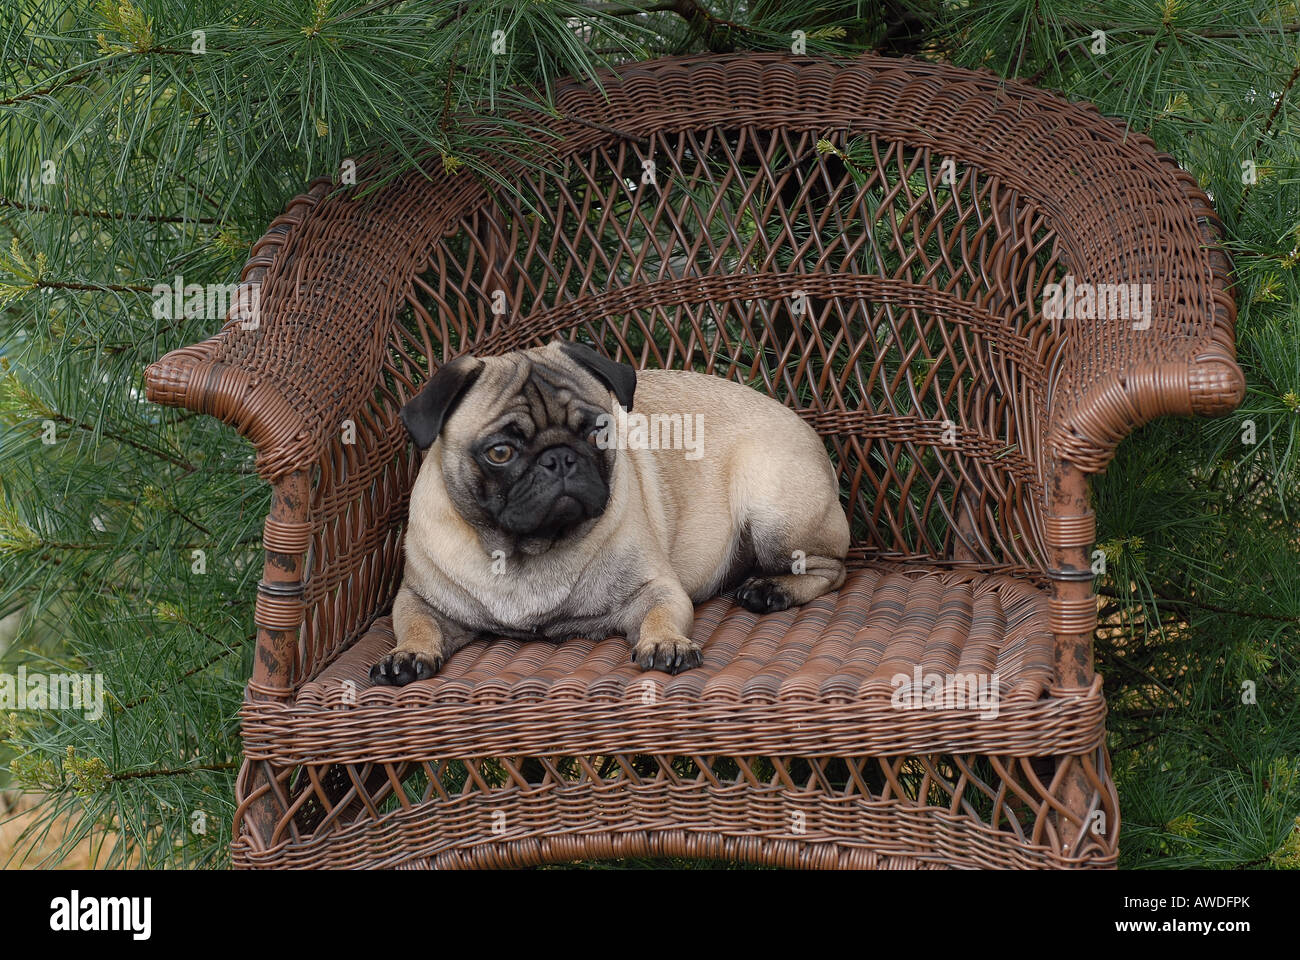 Pug dog on Wicker chair in garden - Stock Image